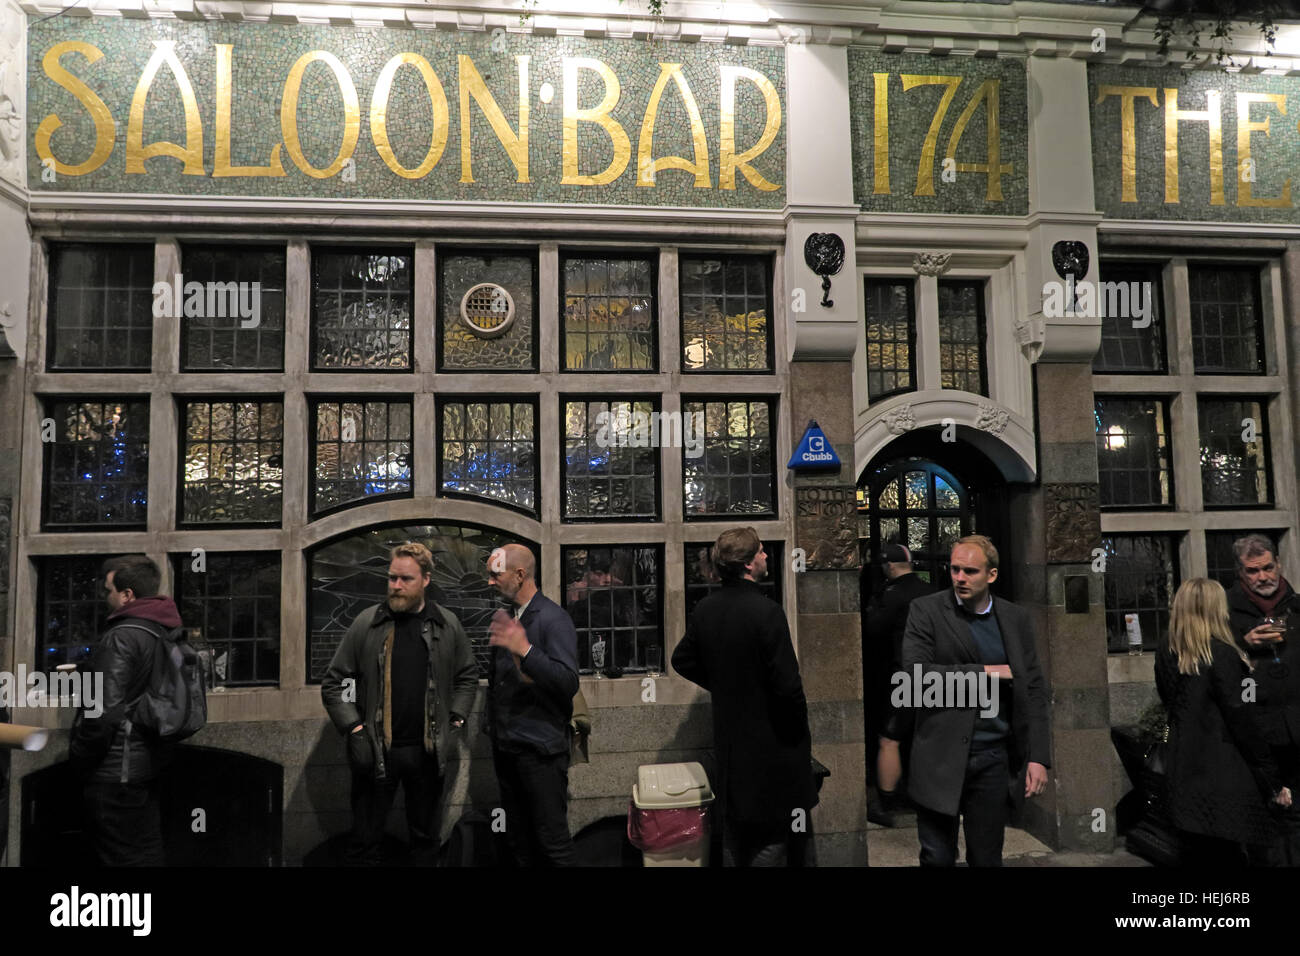 The Black Friar, Blackfriars, London, England, UK at night - Stock Image